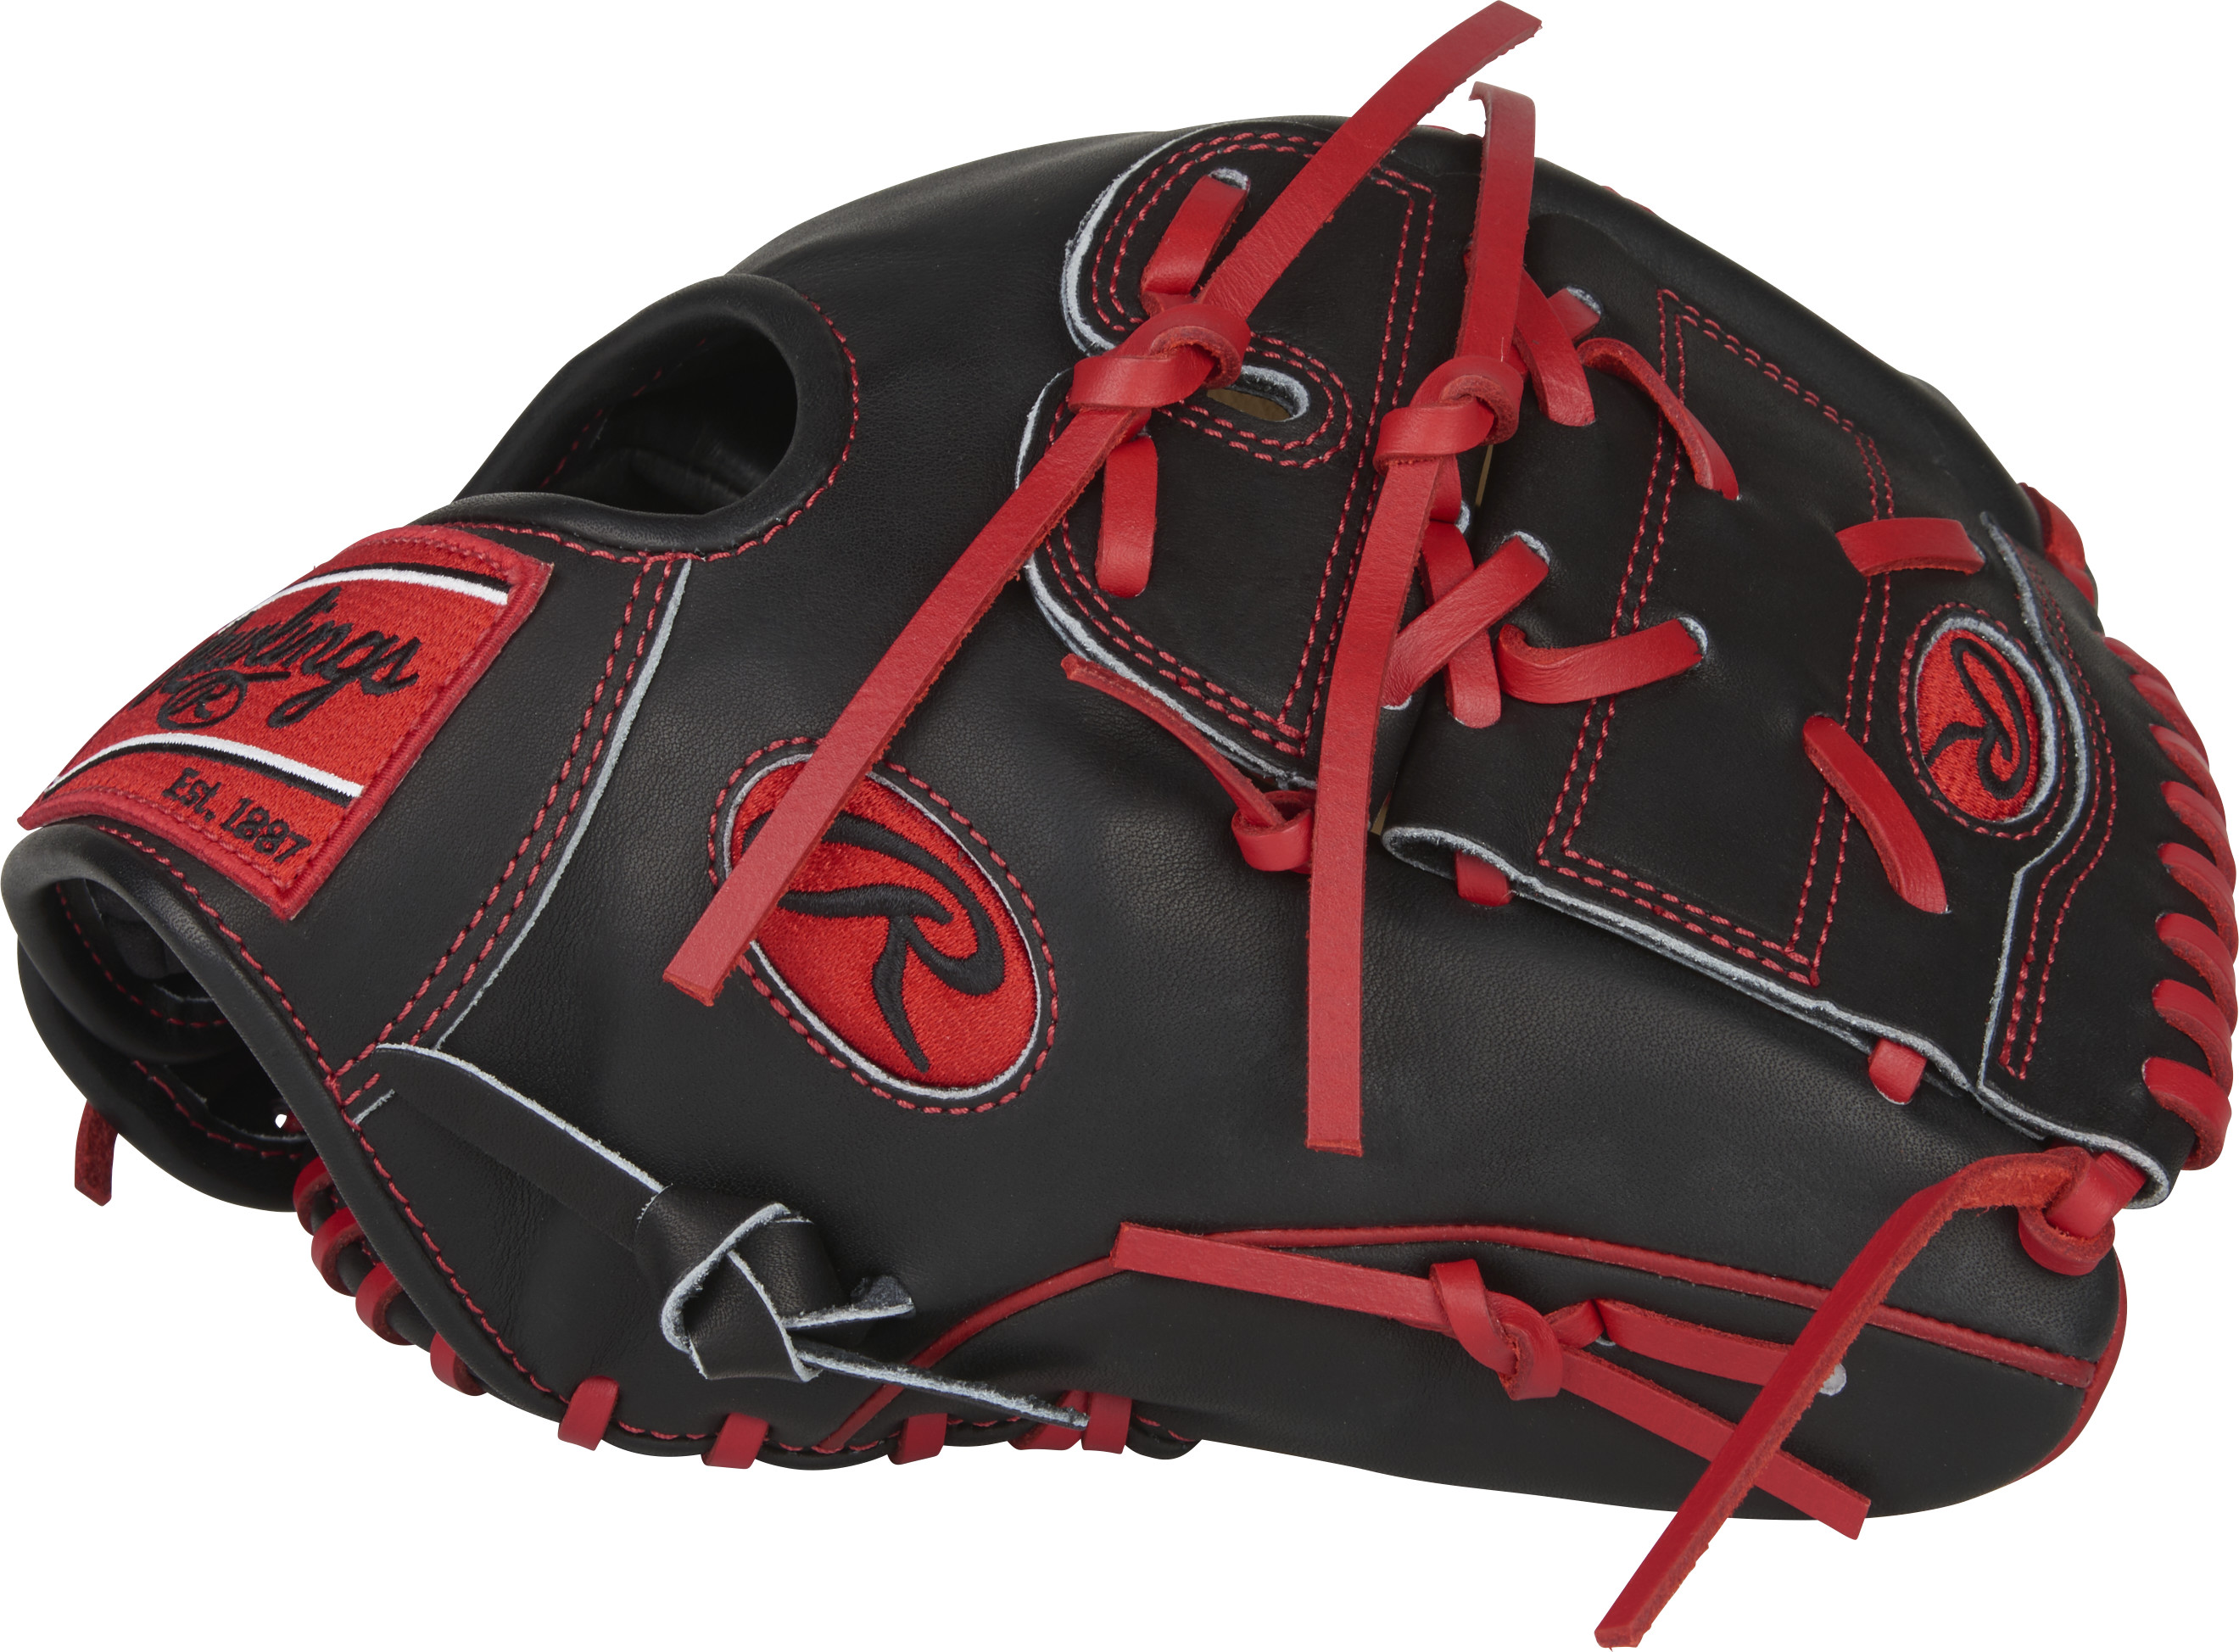 http://www.bestbatdeals.com/images/gloves/rawlings/PRO205-9CBS-3.jpg